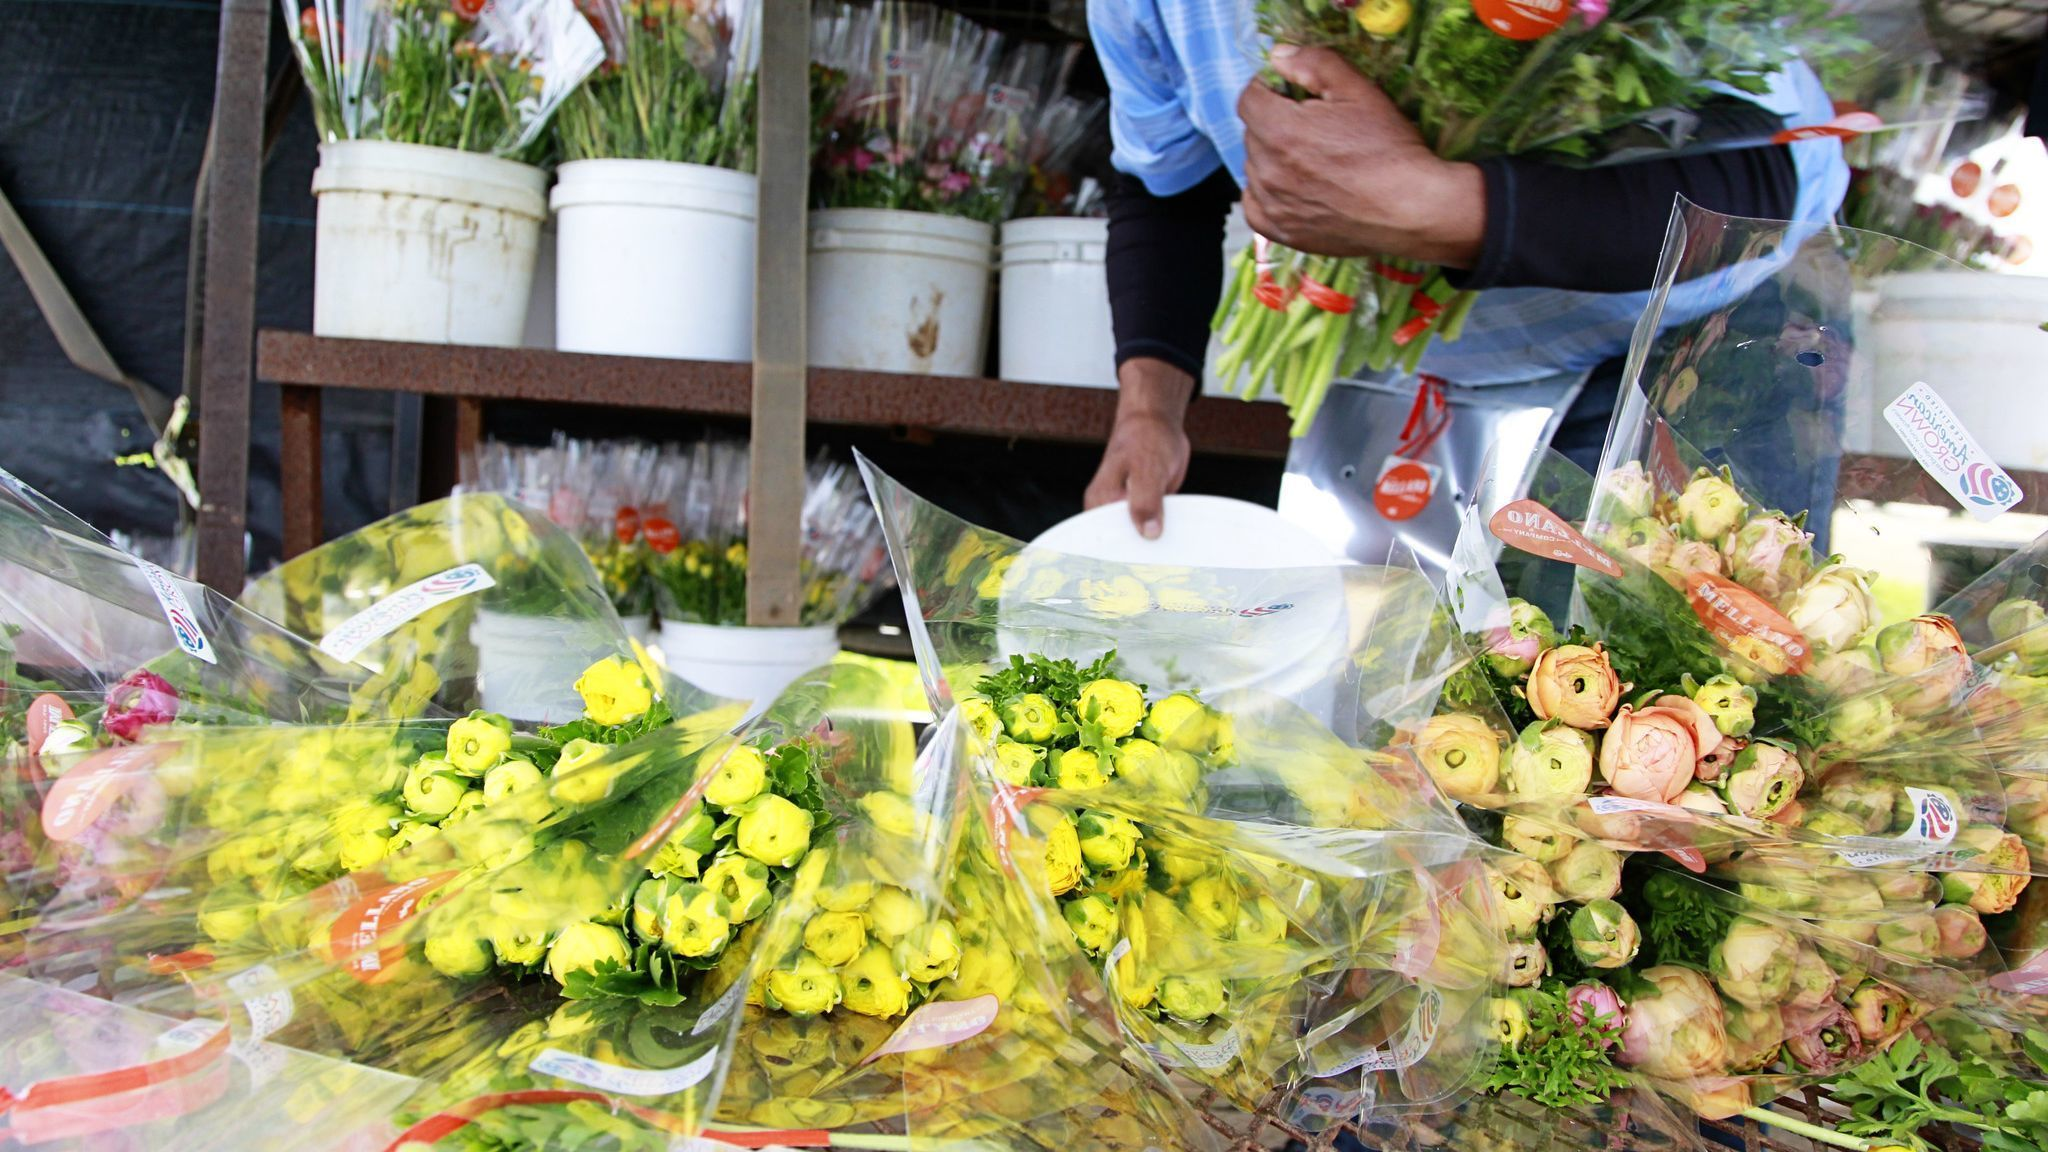 Recent rains promise a 'super bloom' at Carlsbad's Flower Fields